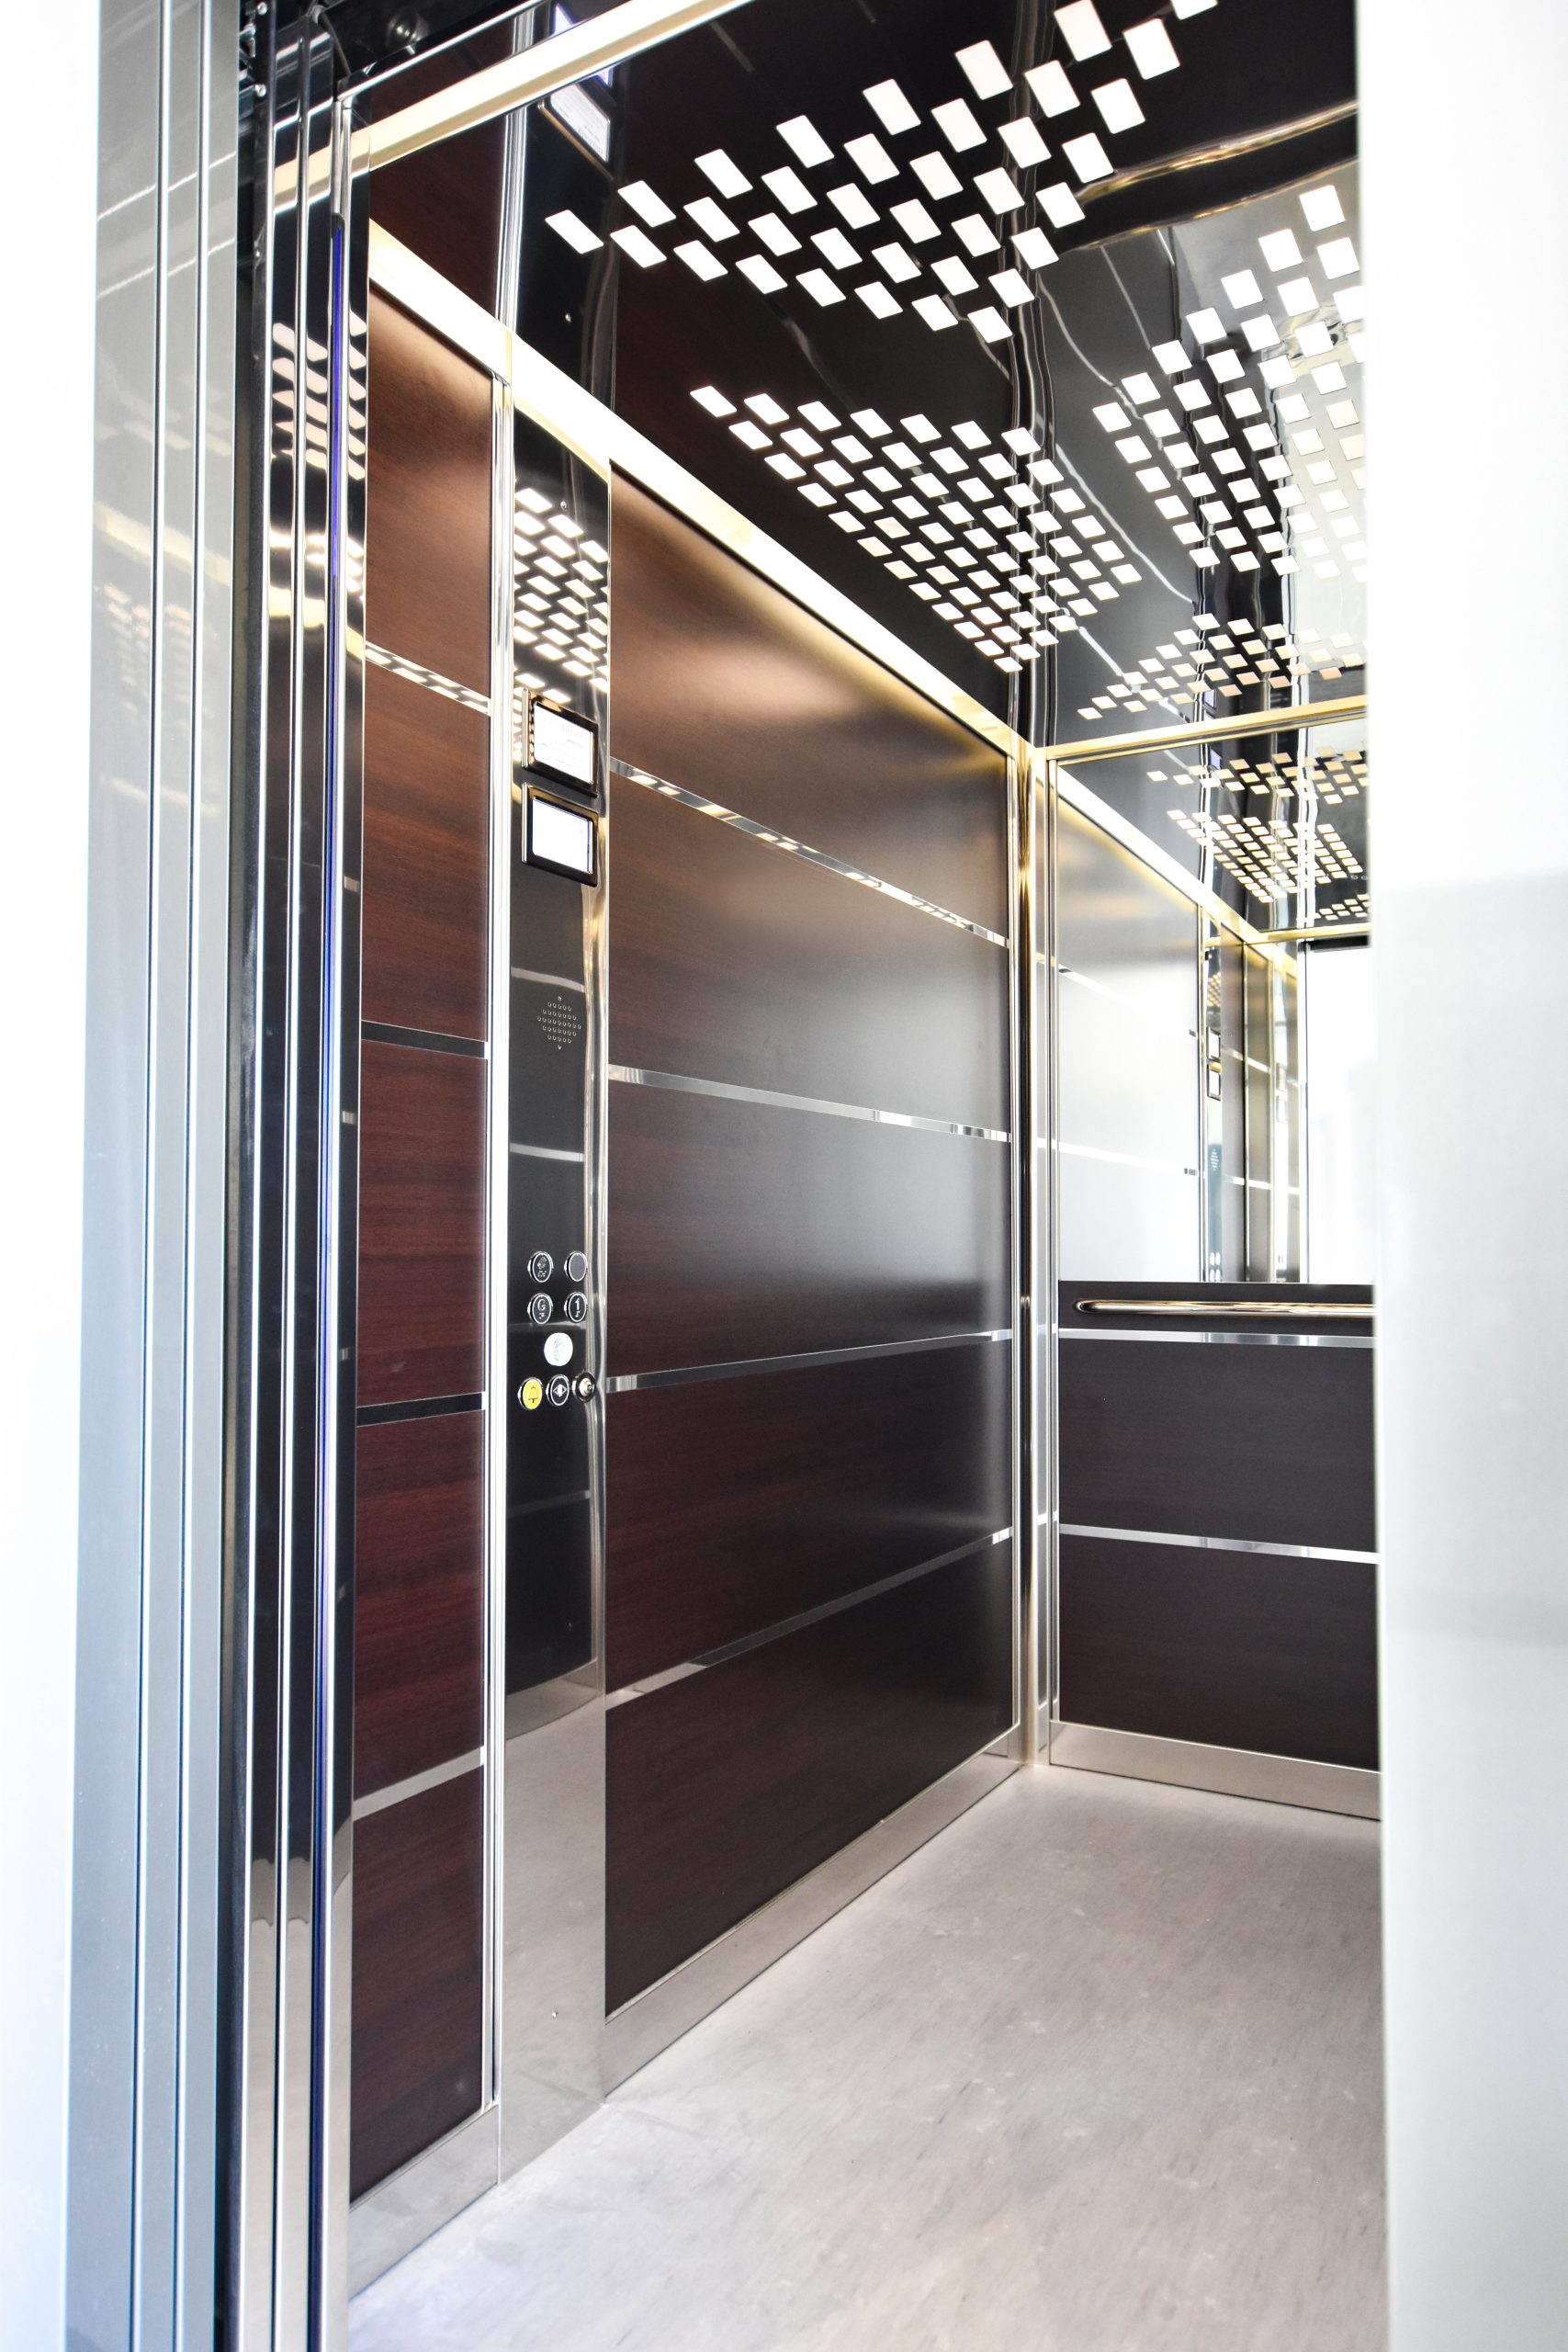 a brown stretcher lift cabin with silver details, a half length mirror on the far wall, lights on the ceiling and a light floor.